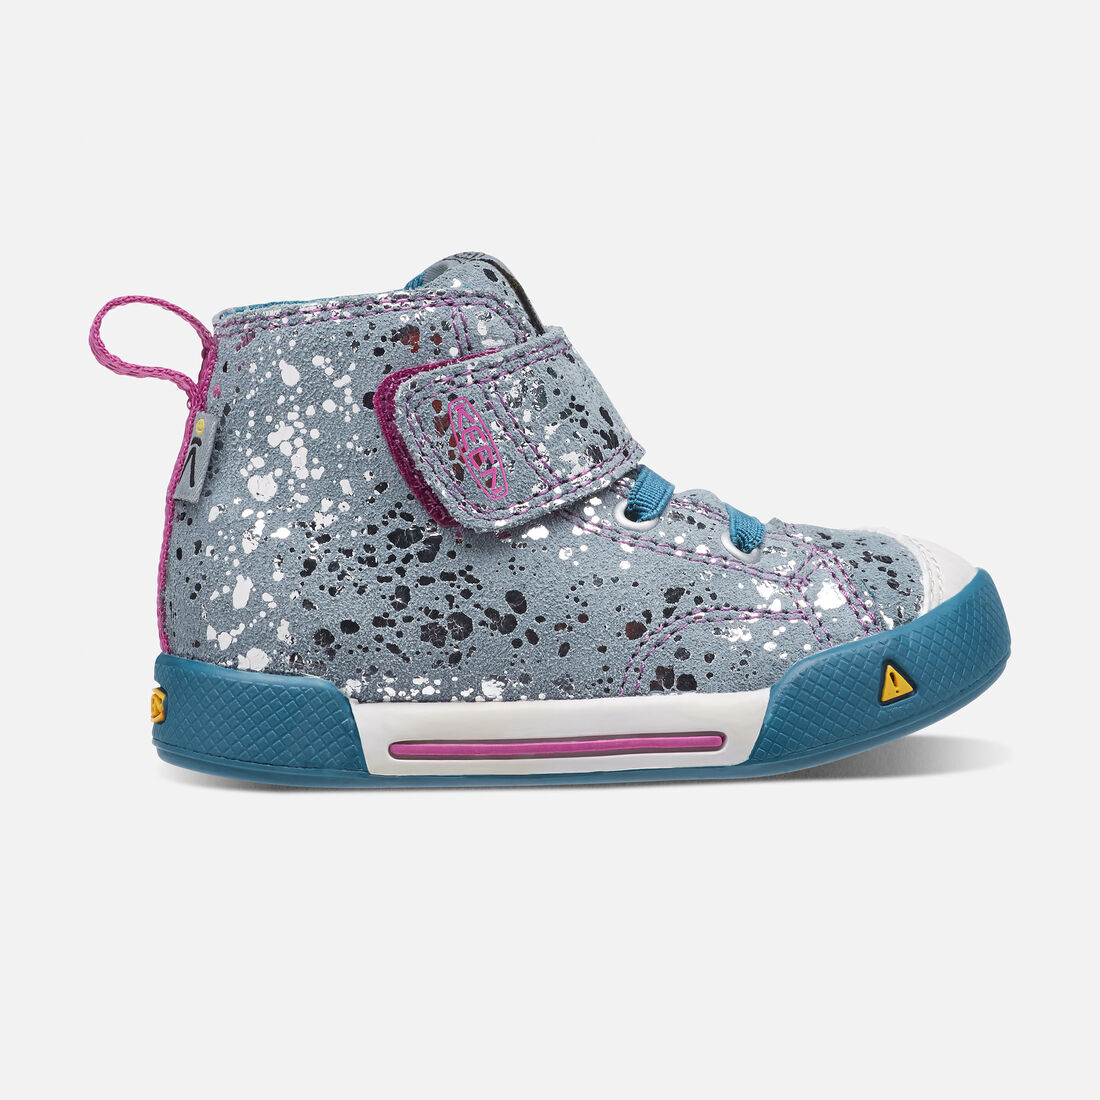 Toddlers' Encanto Scout High Top in Silver Splatter/Purple Wine - large view.